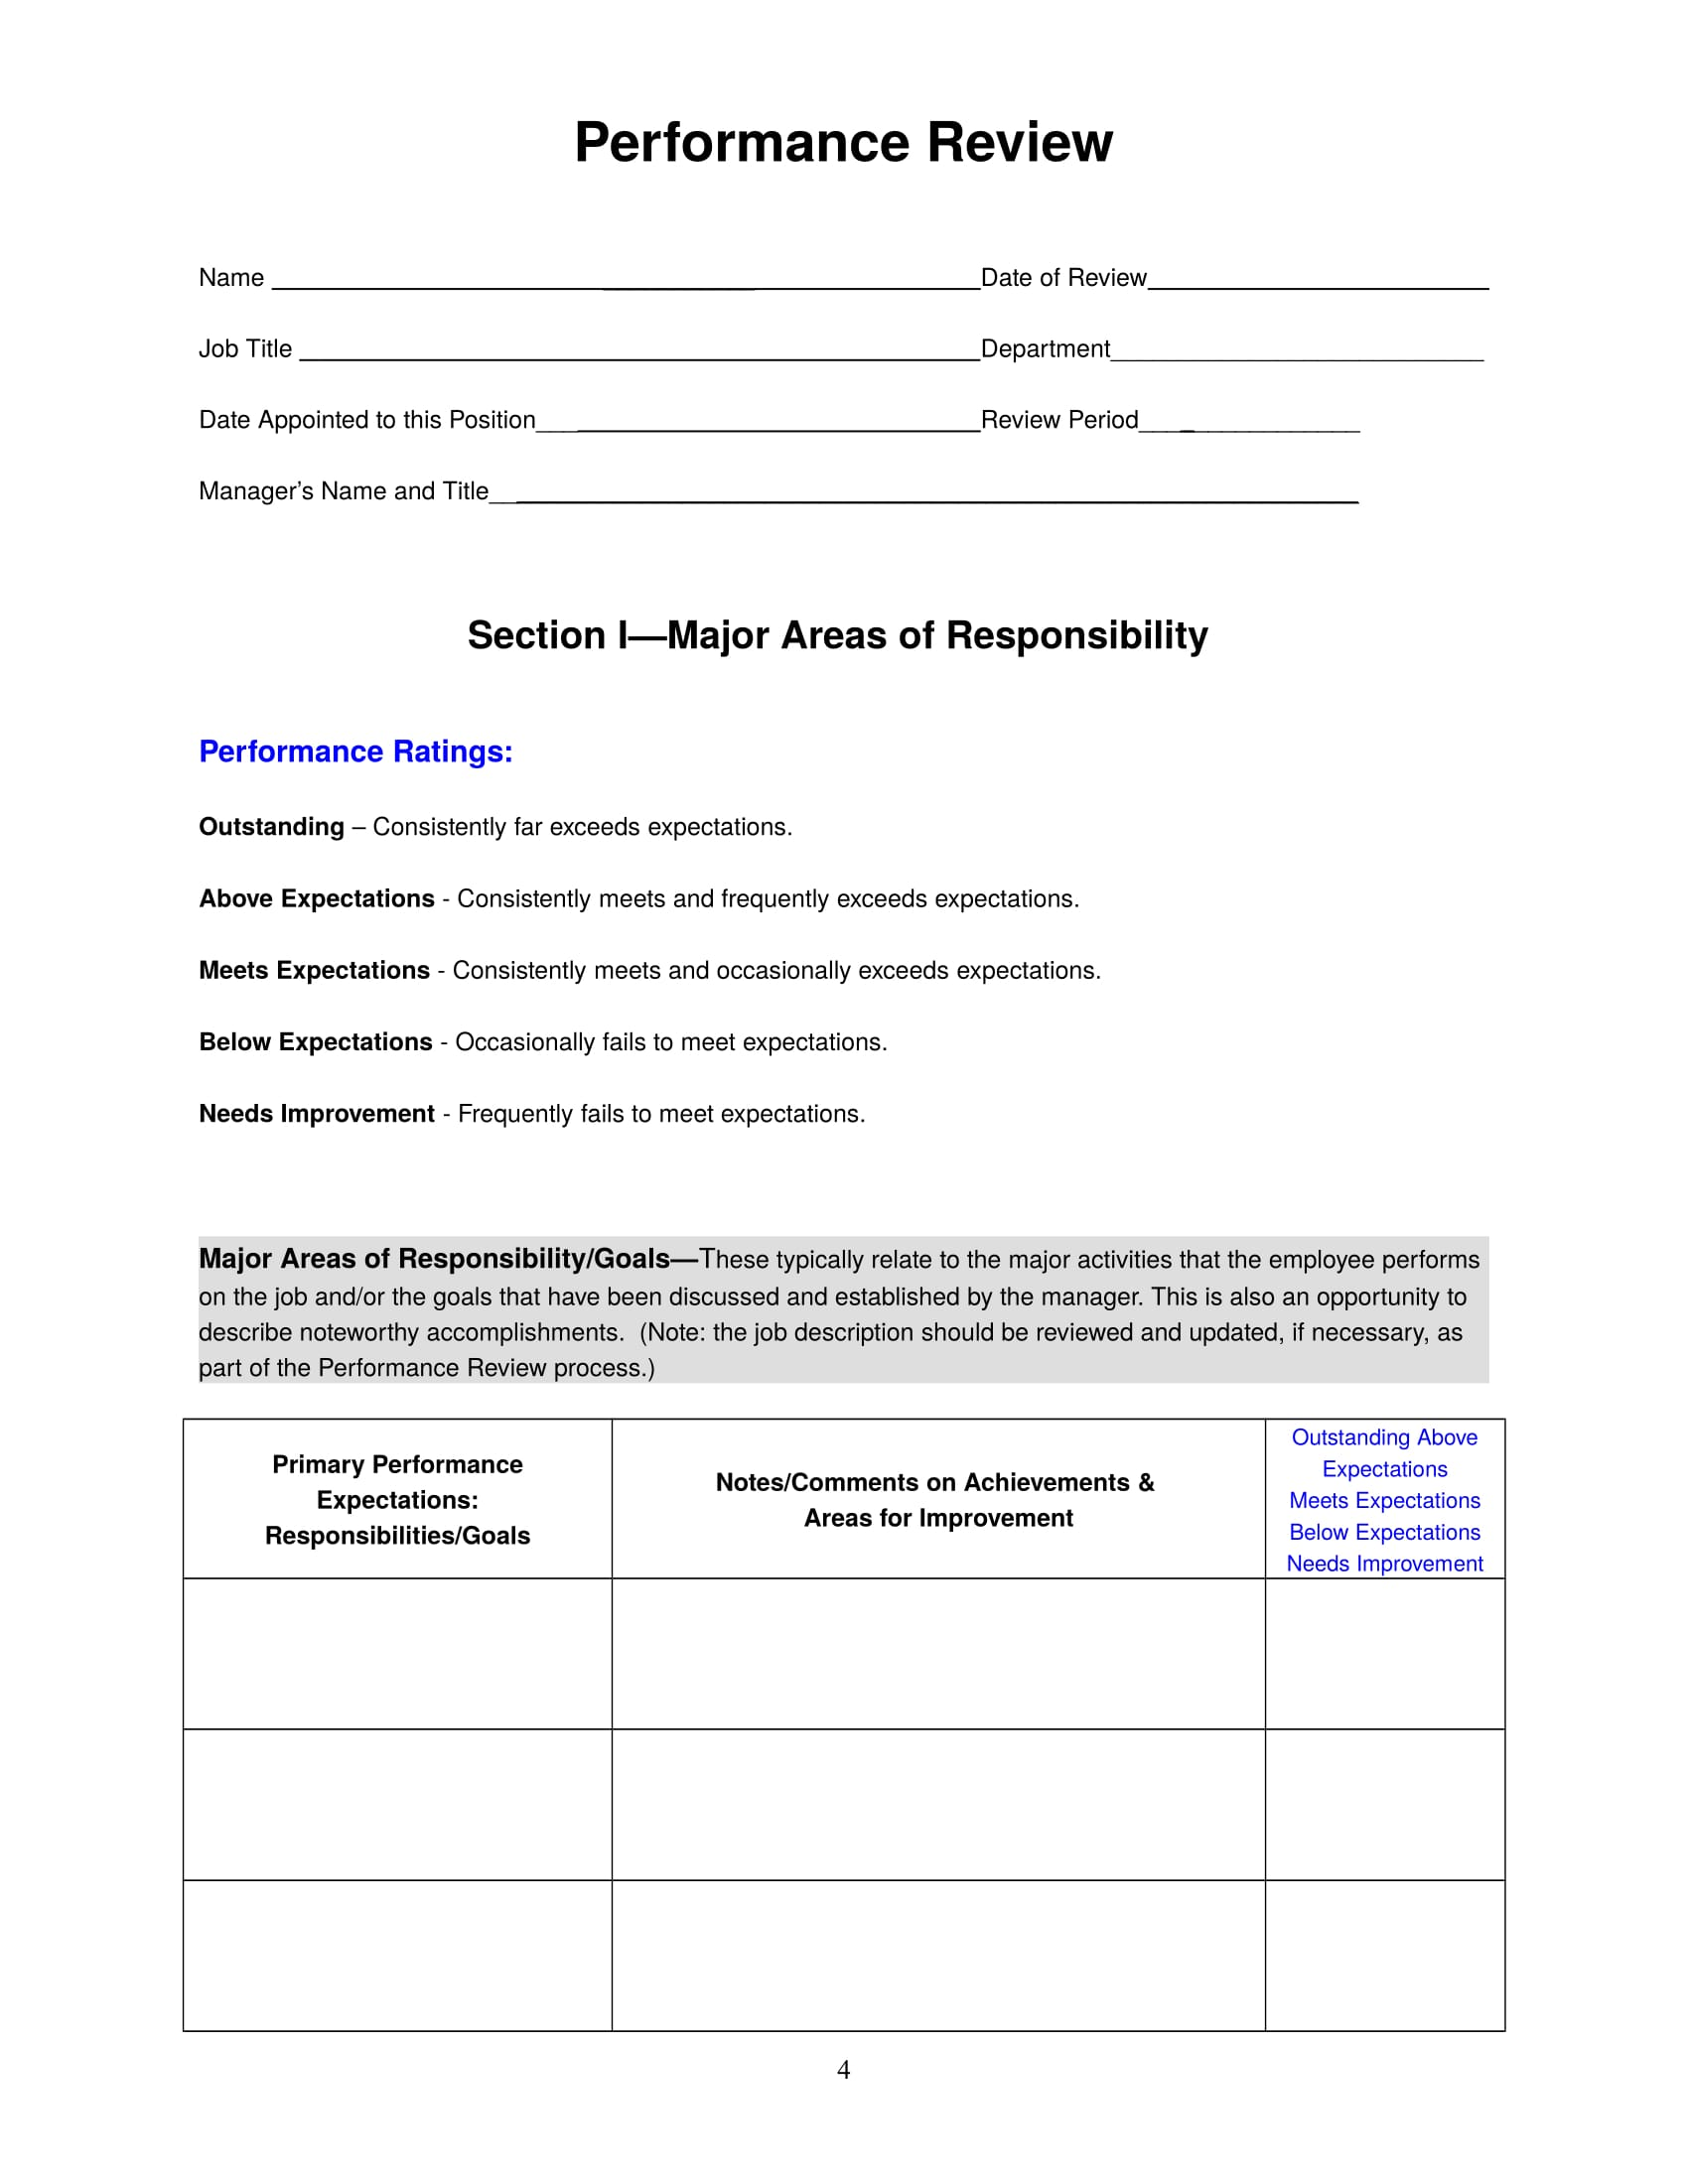 performance review form 04